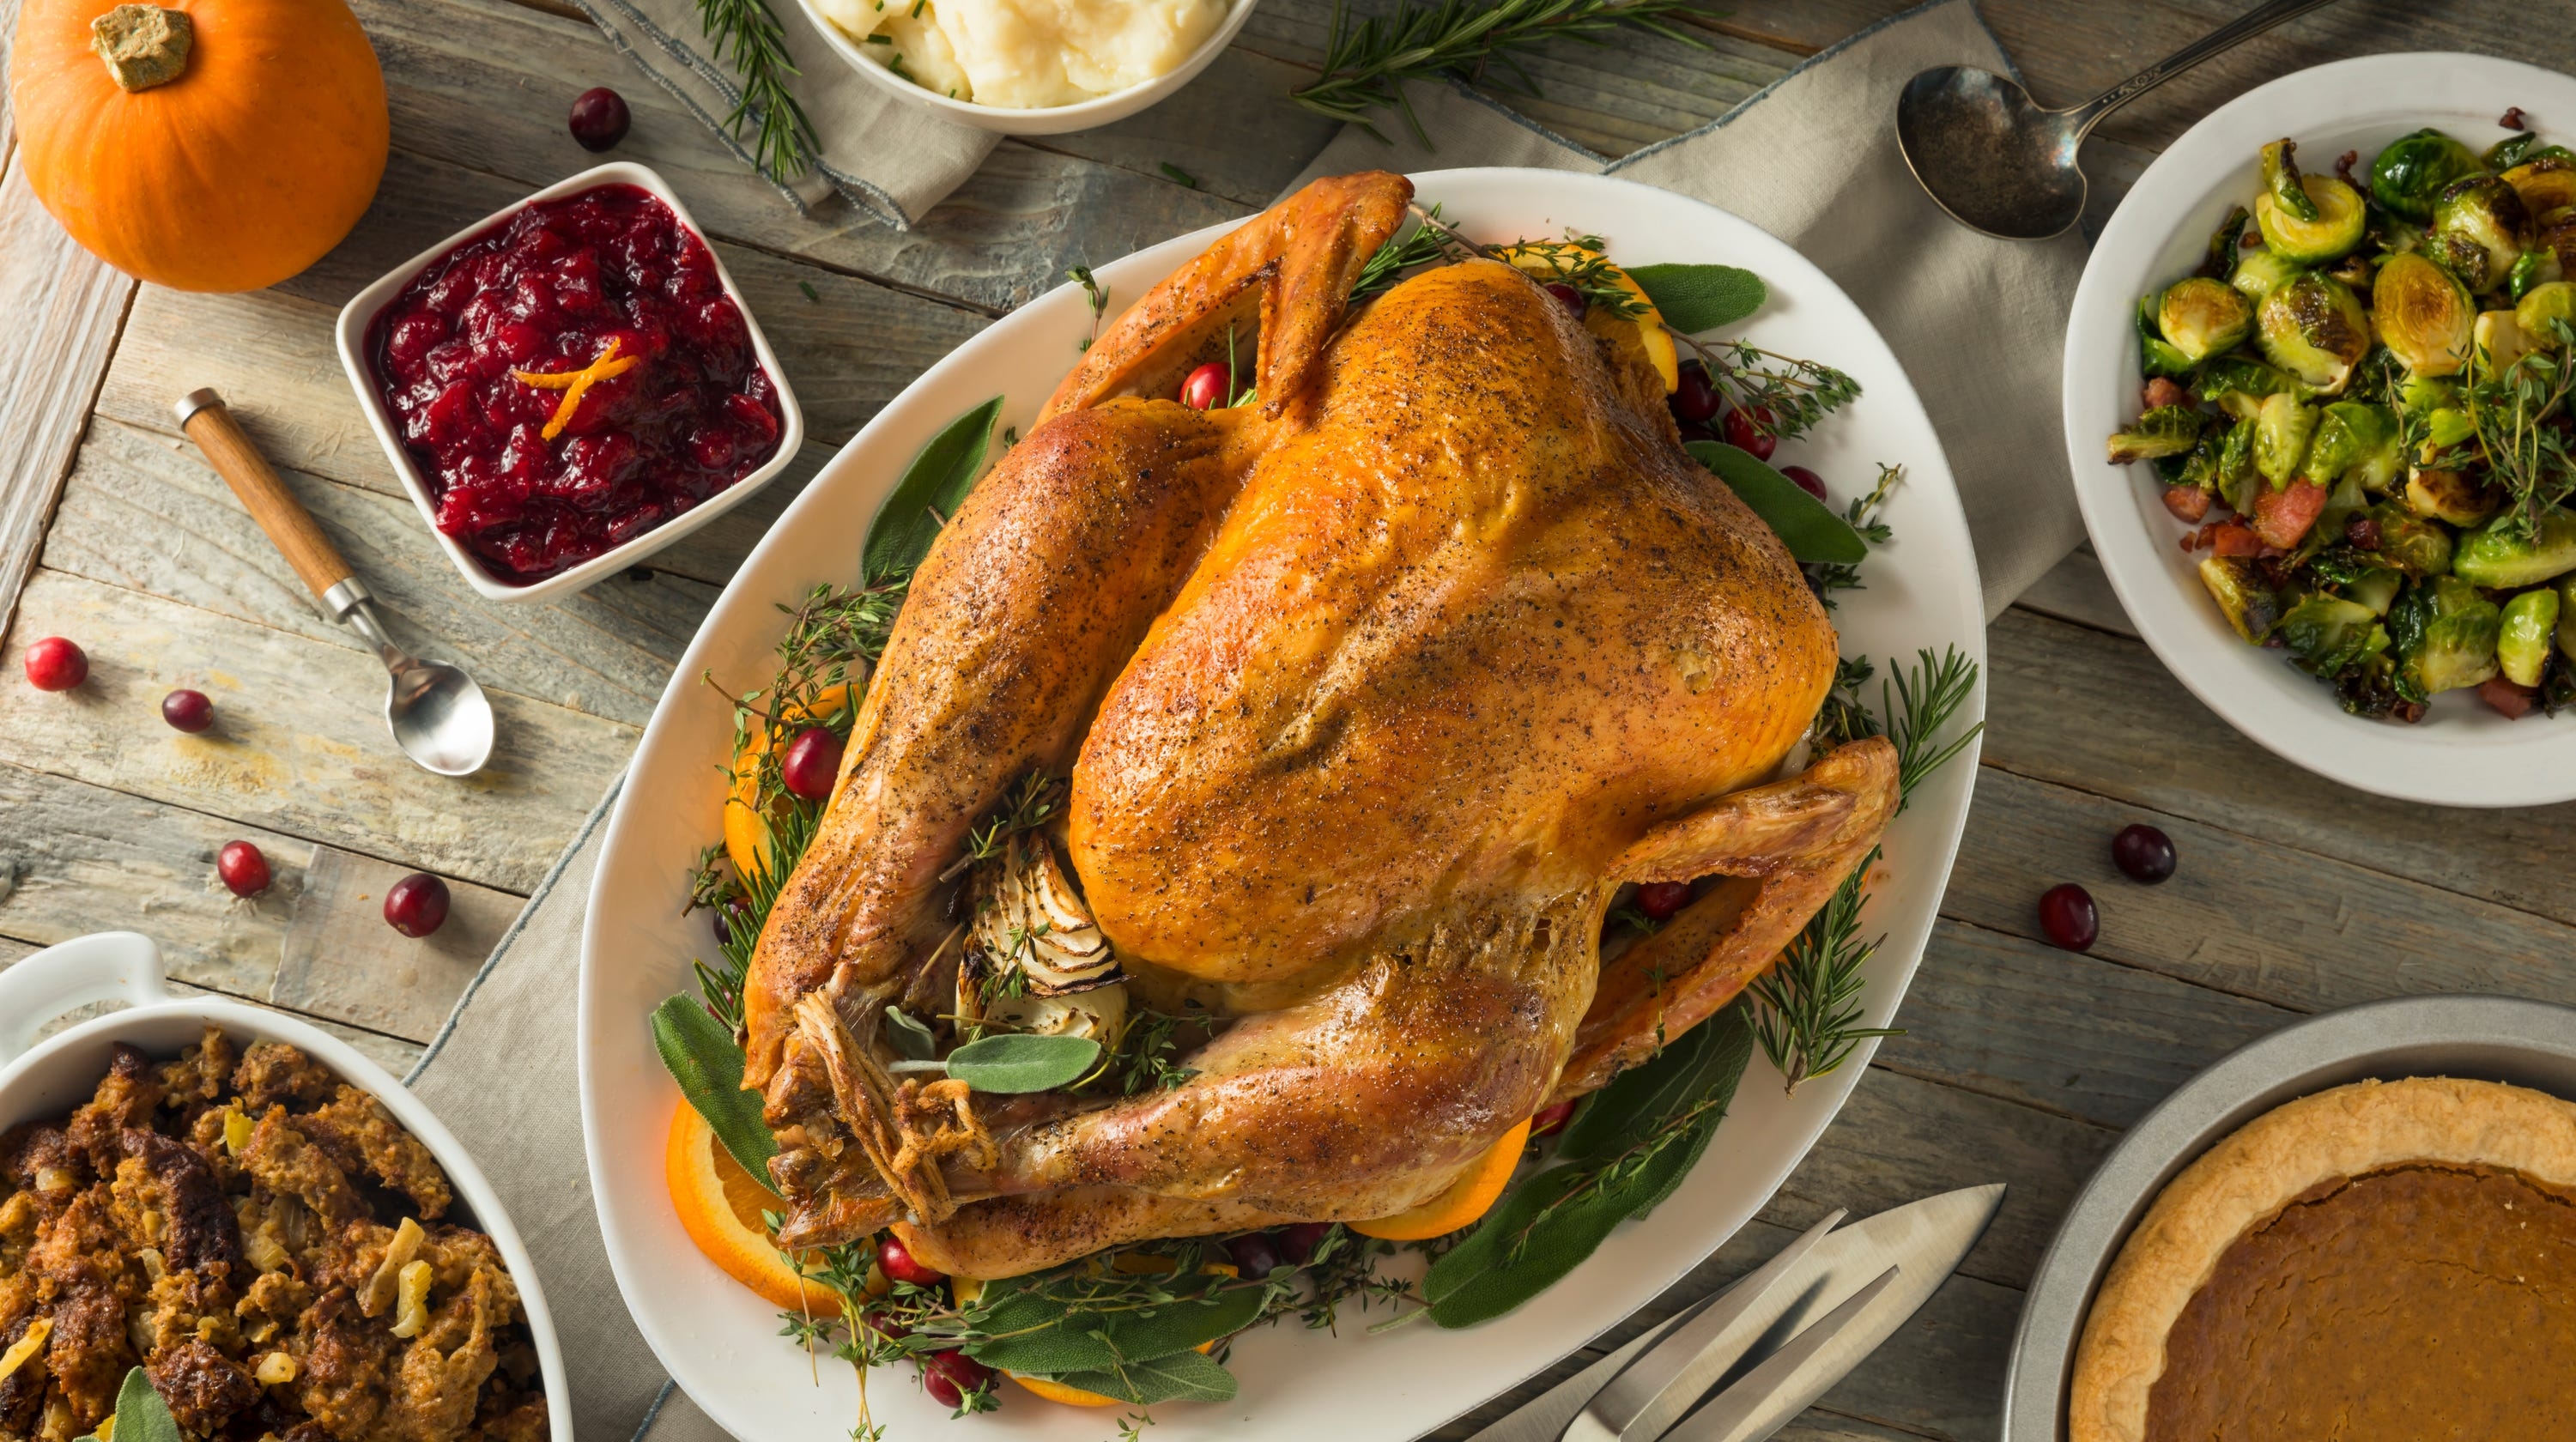 Average Thanksgiving dinner costs a bit less than last year